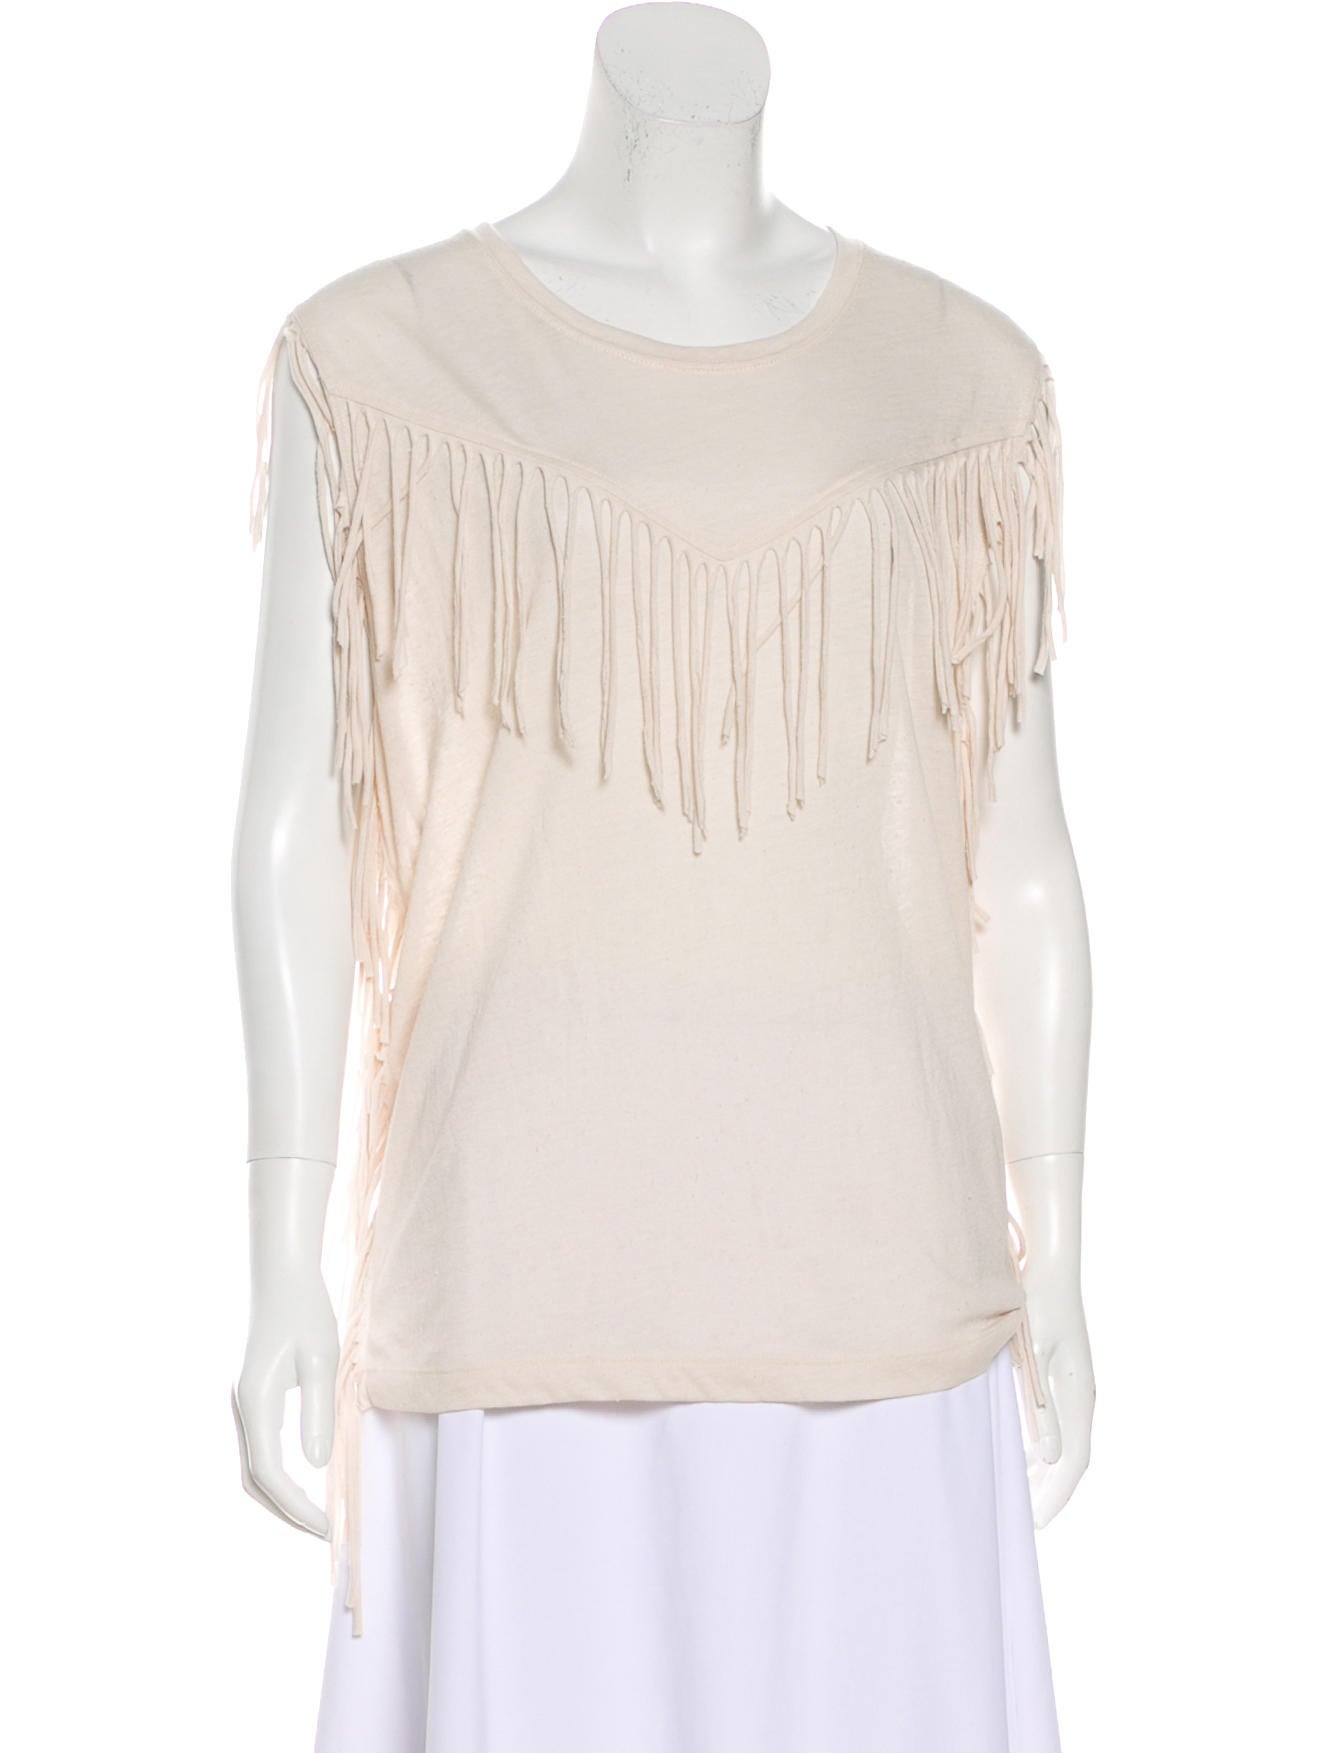 Iro Gise Fringe-Trim Top Free Shipping High Quality Browse For Sale Free Shipping Excellent Clearance Perfect Free Shipping 100% Authentic siTlABbxe